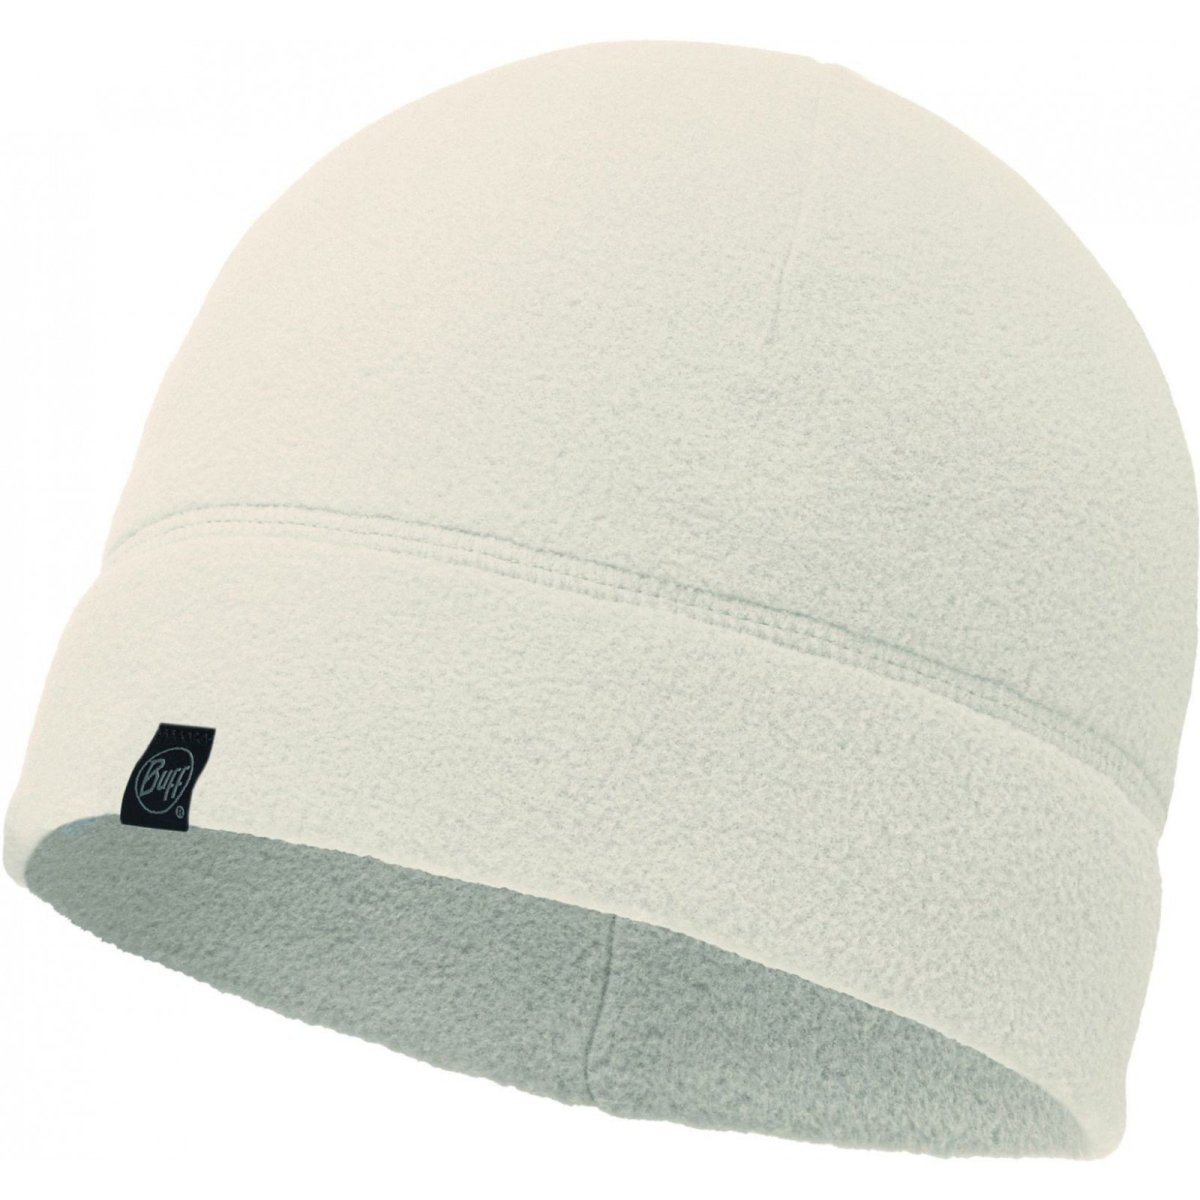 Шапка Buff Polar Hat solid cru